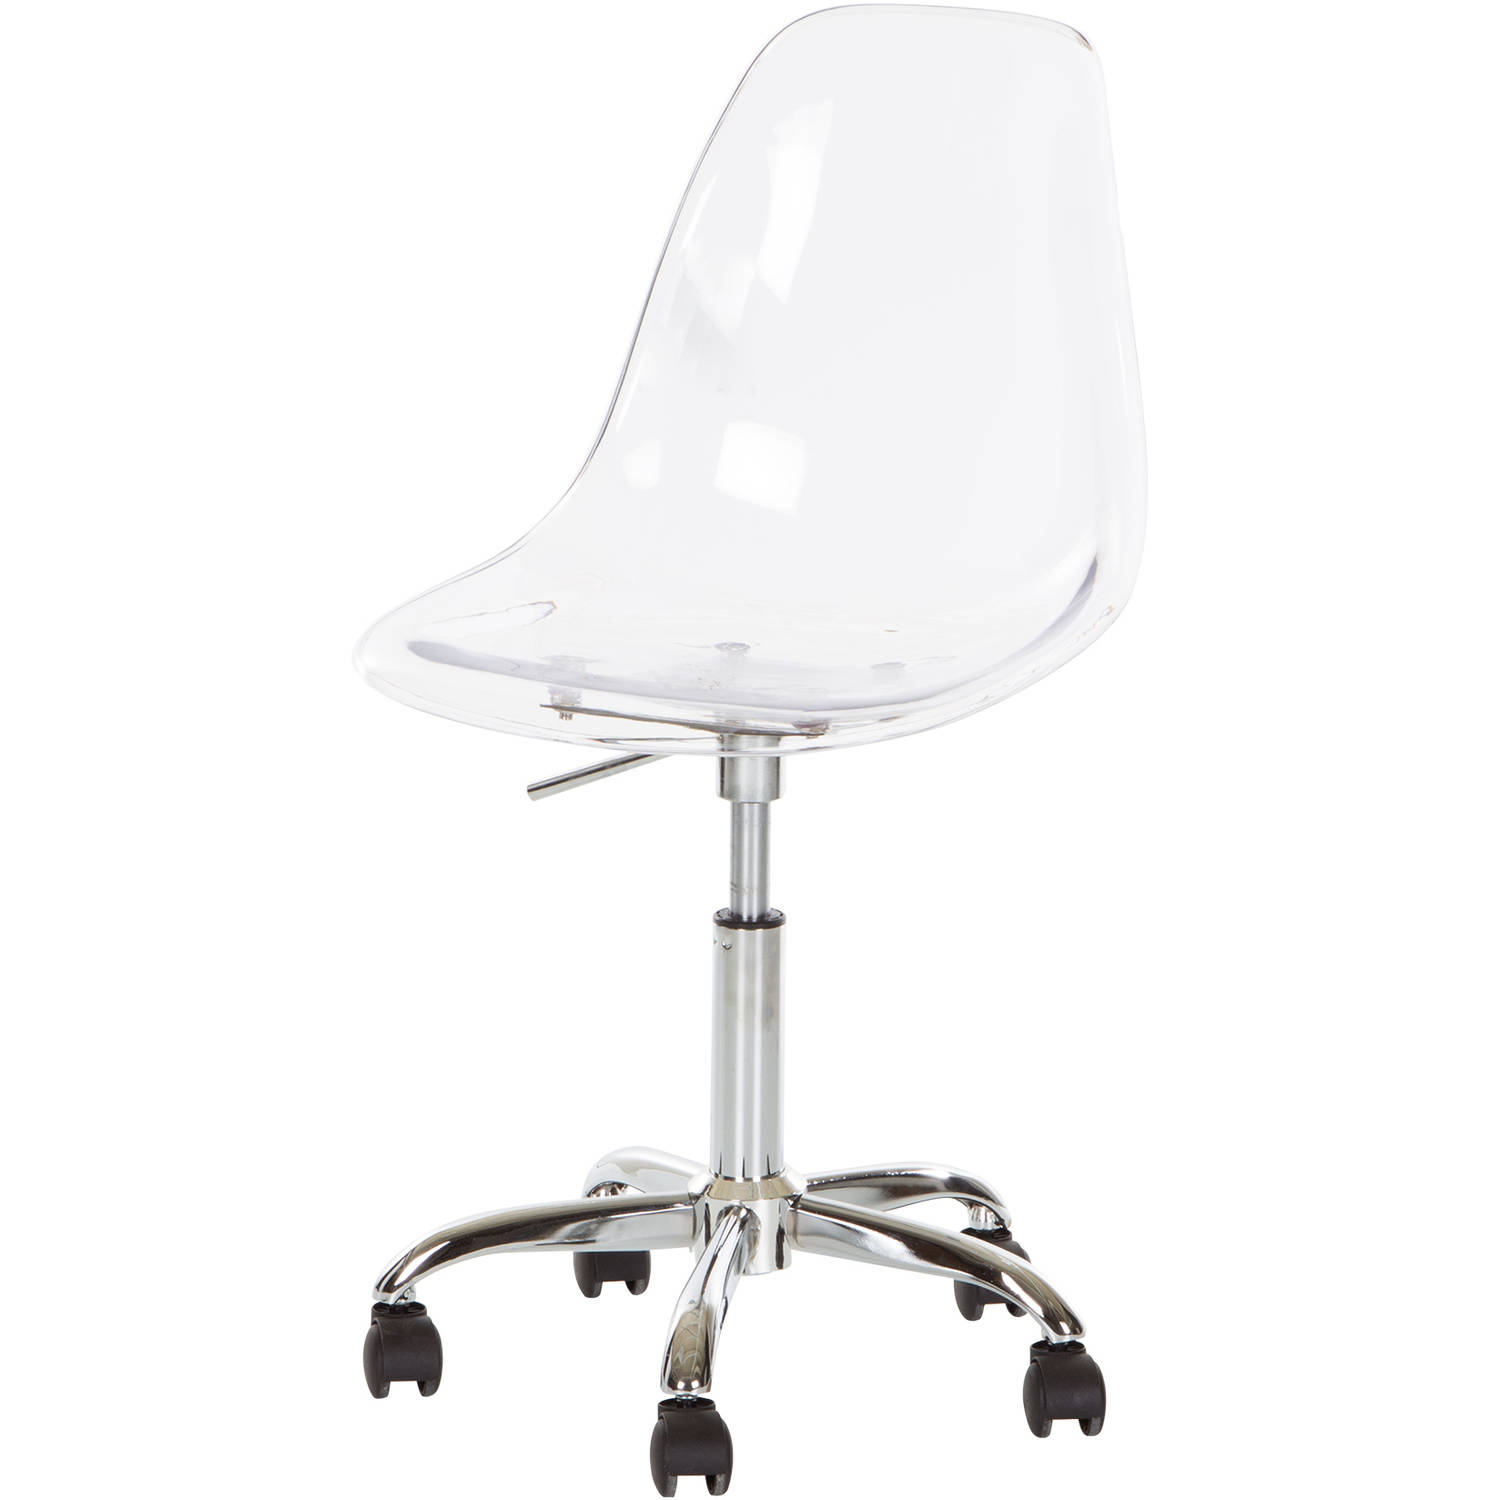 South Shore Annexe Clear Office Chair with Wheels Multiple Colors - Walmart.com  sc 1 st  Walmart & South Shore Annexe Clear Office Chair with Wheels Multiple Colors ...